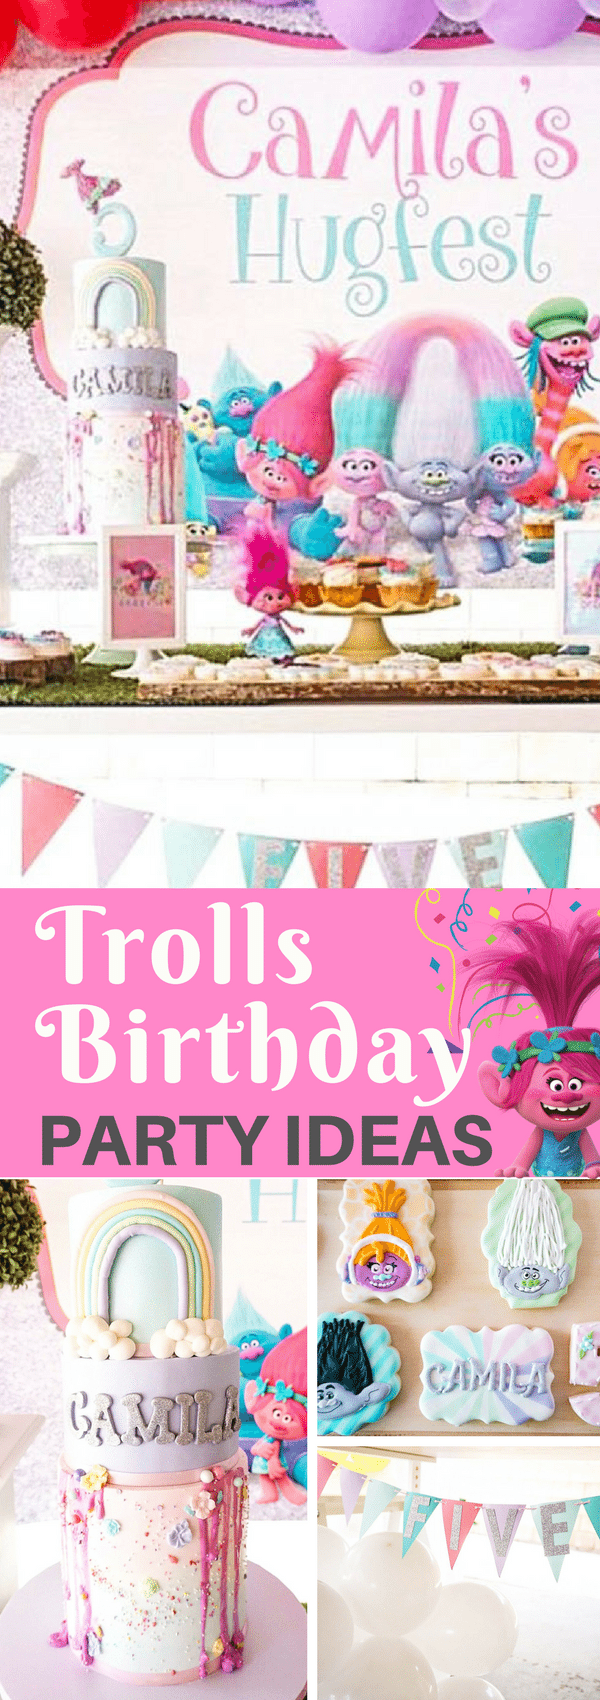 Does your little one love Princess Poppy?  This adorable Princess Poppy Trolls Birthday Party inspiration is so crazy CUTE! #trollsparty #kidsbirthday #trolls